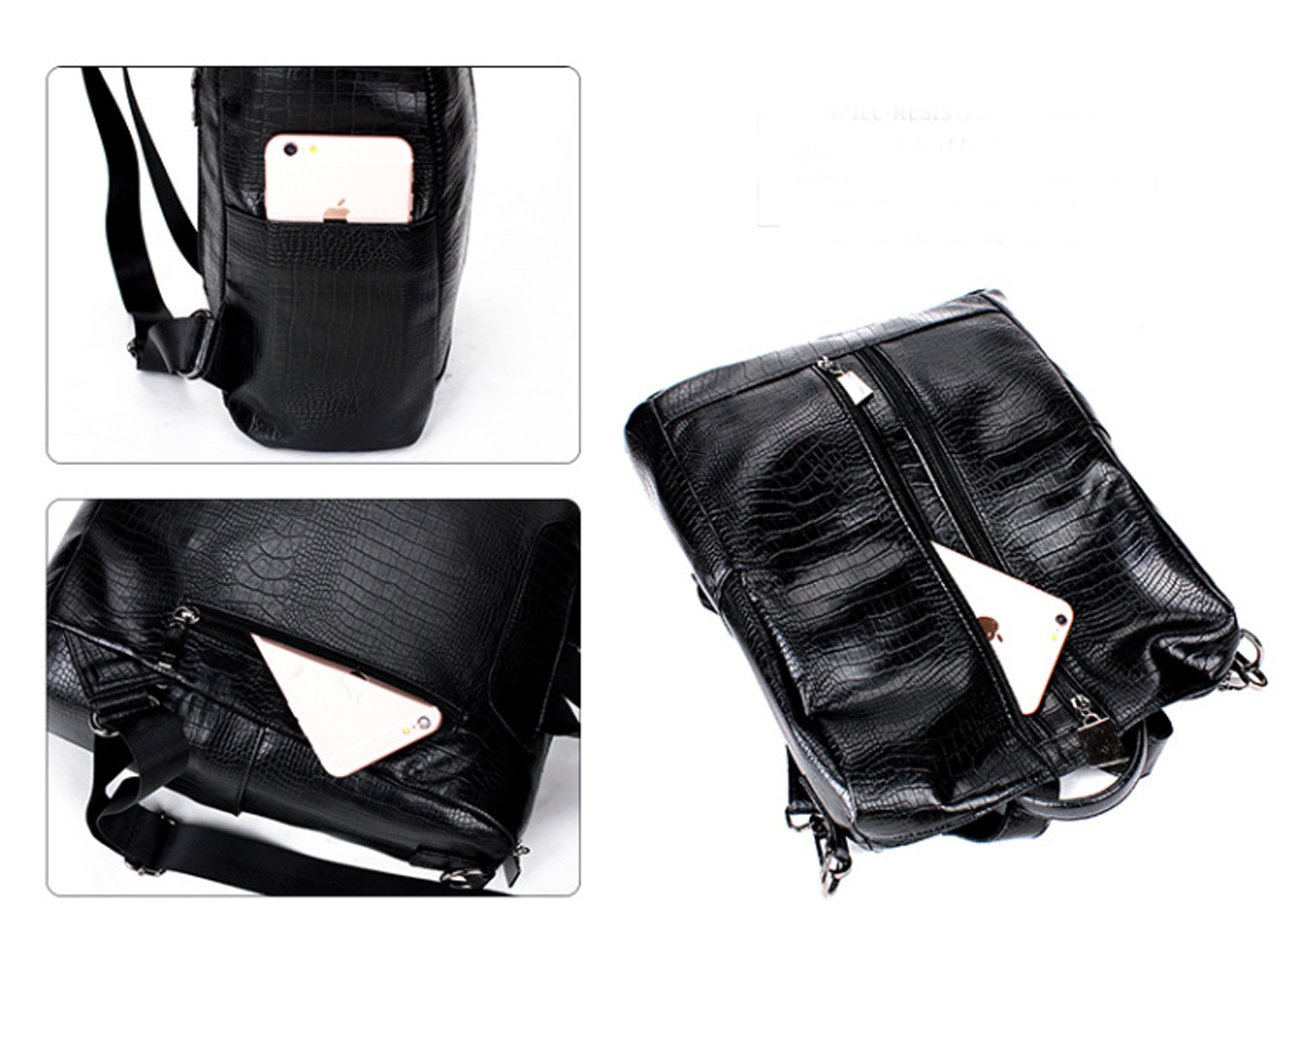 Fashion Backpack for Women Rucksack PU Leather Black Shoulder Bags Purses for Ladies Tote Bags by Goldsuntop (Image #6)